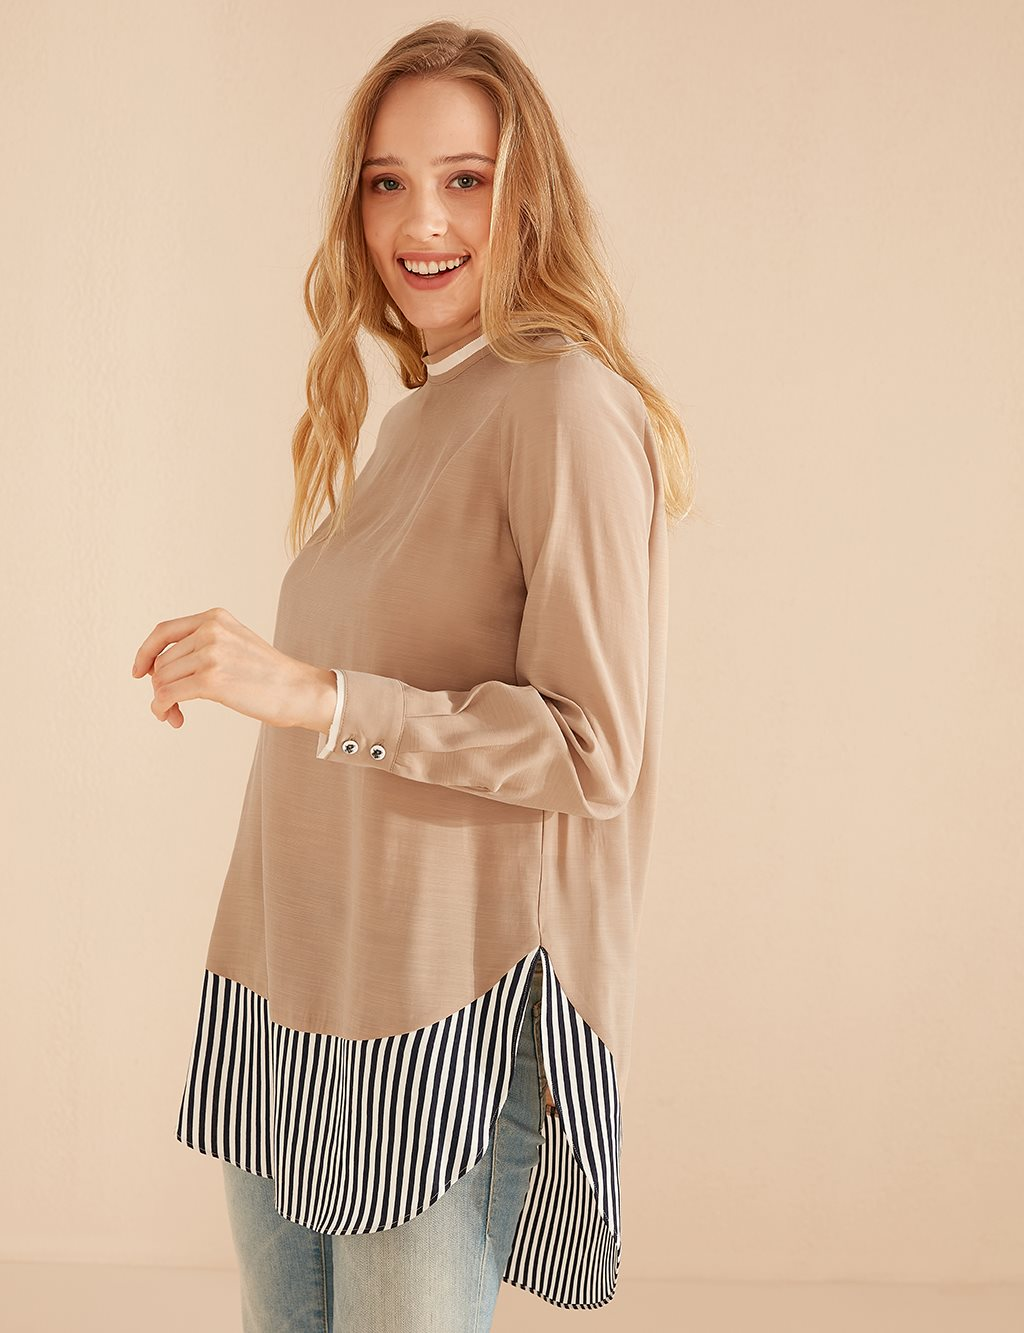 Tunic With Striped Piece B20 21023 Beige